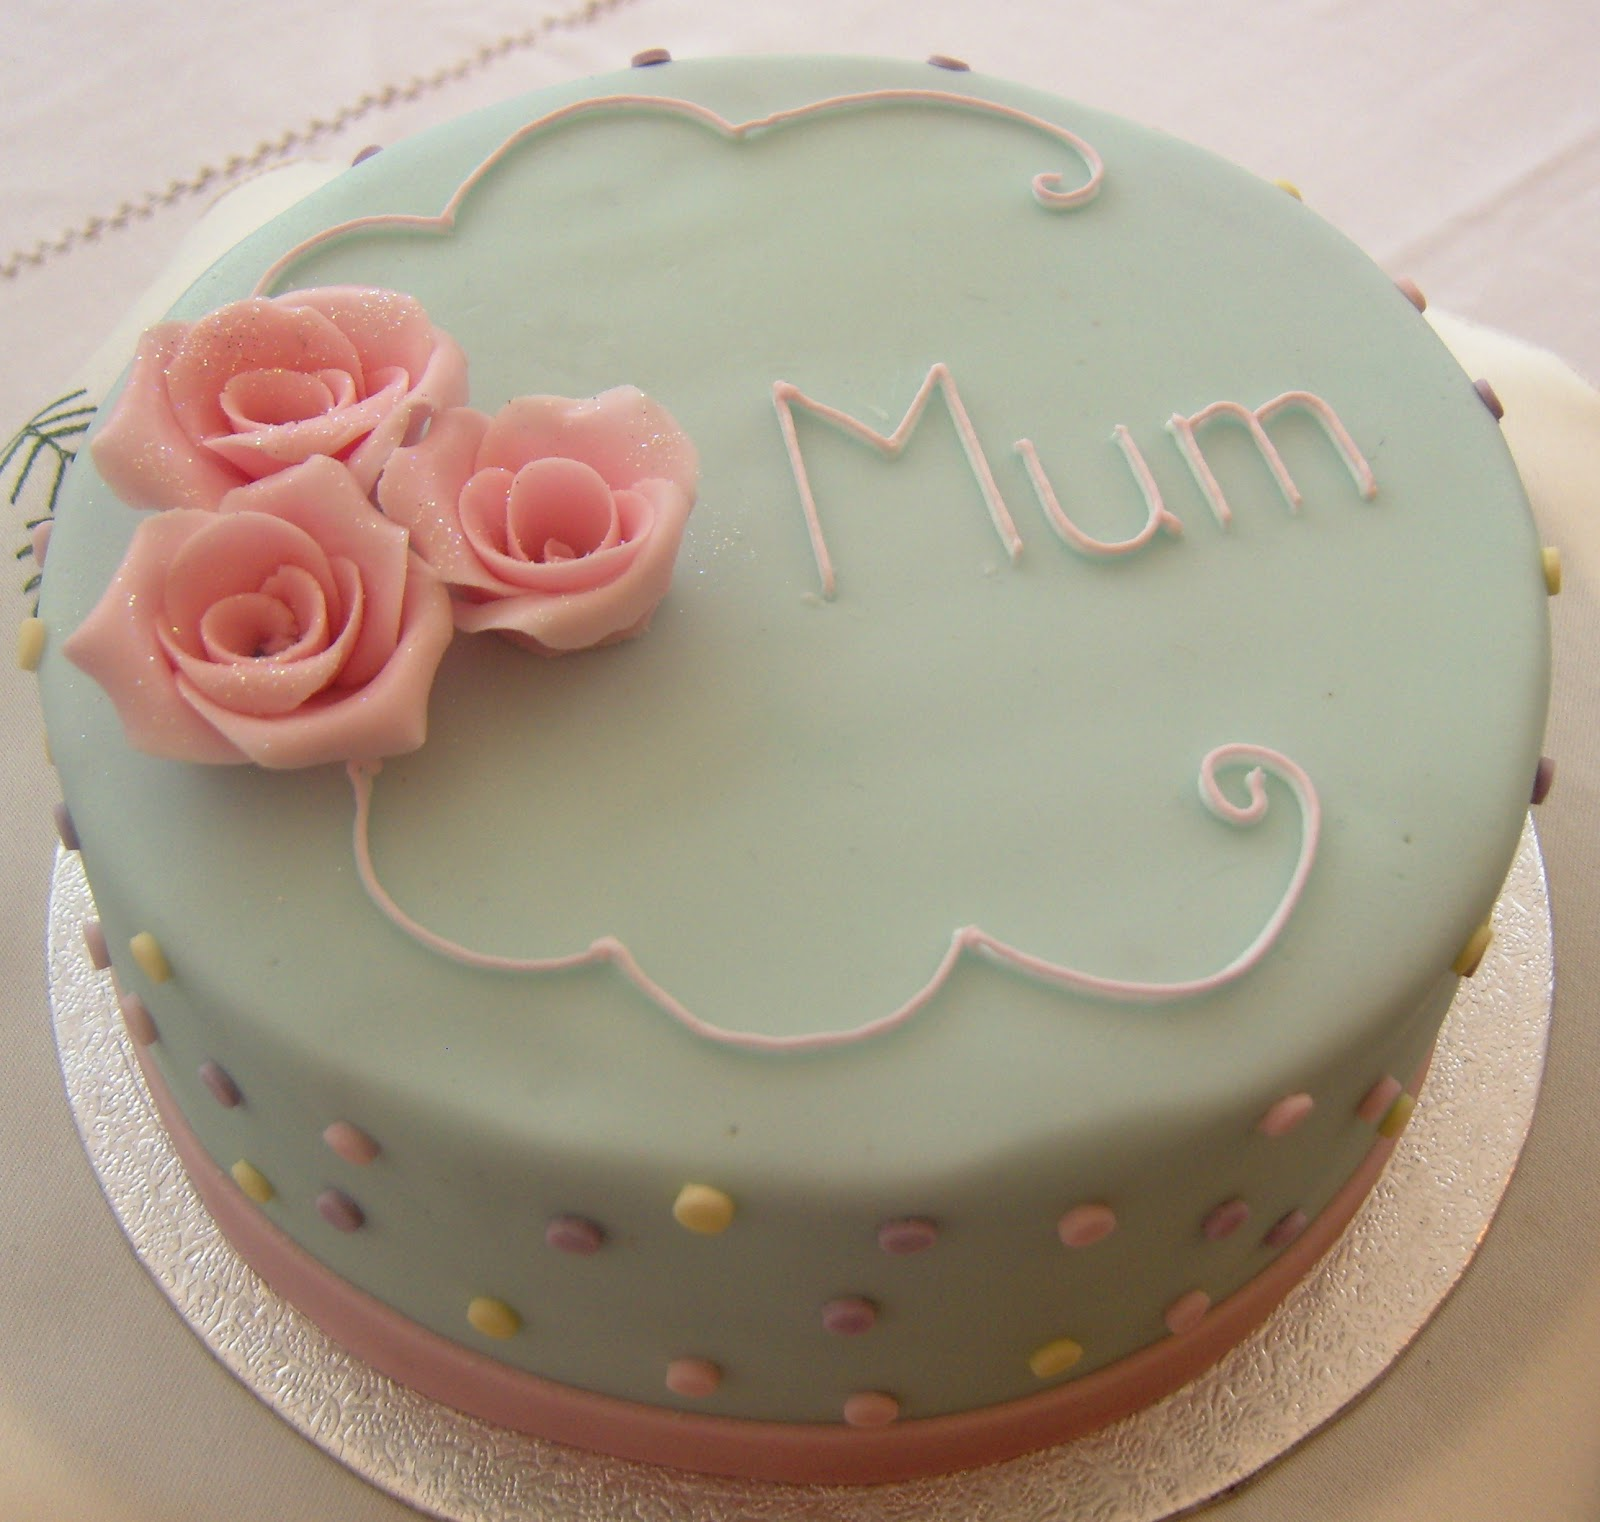 Order Cake For Mom Online Delivery From Wish A Flower